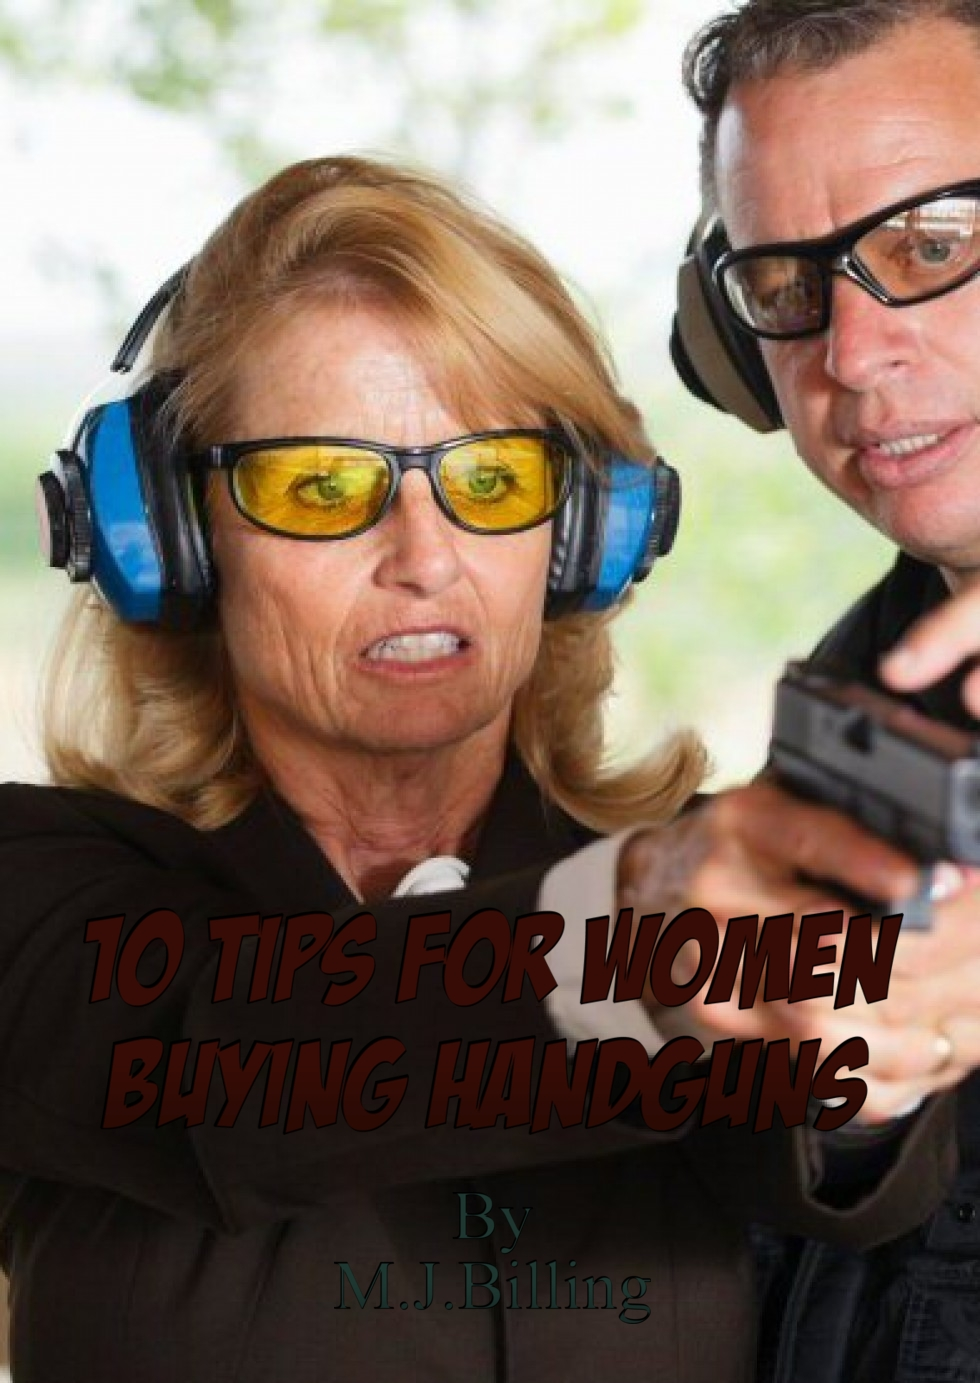 10 Tips For Women Buying Handguns